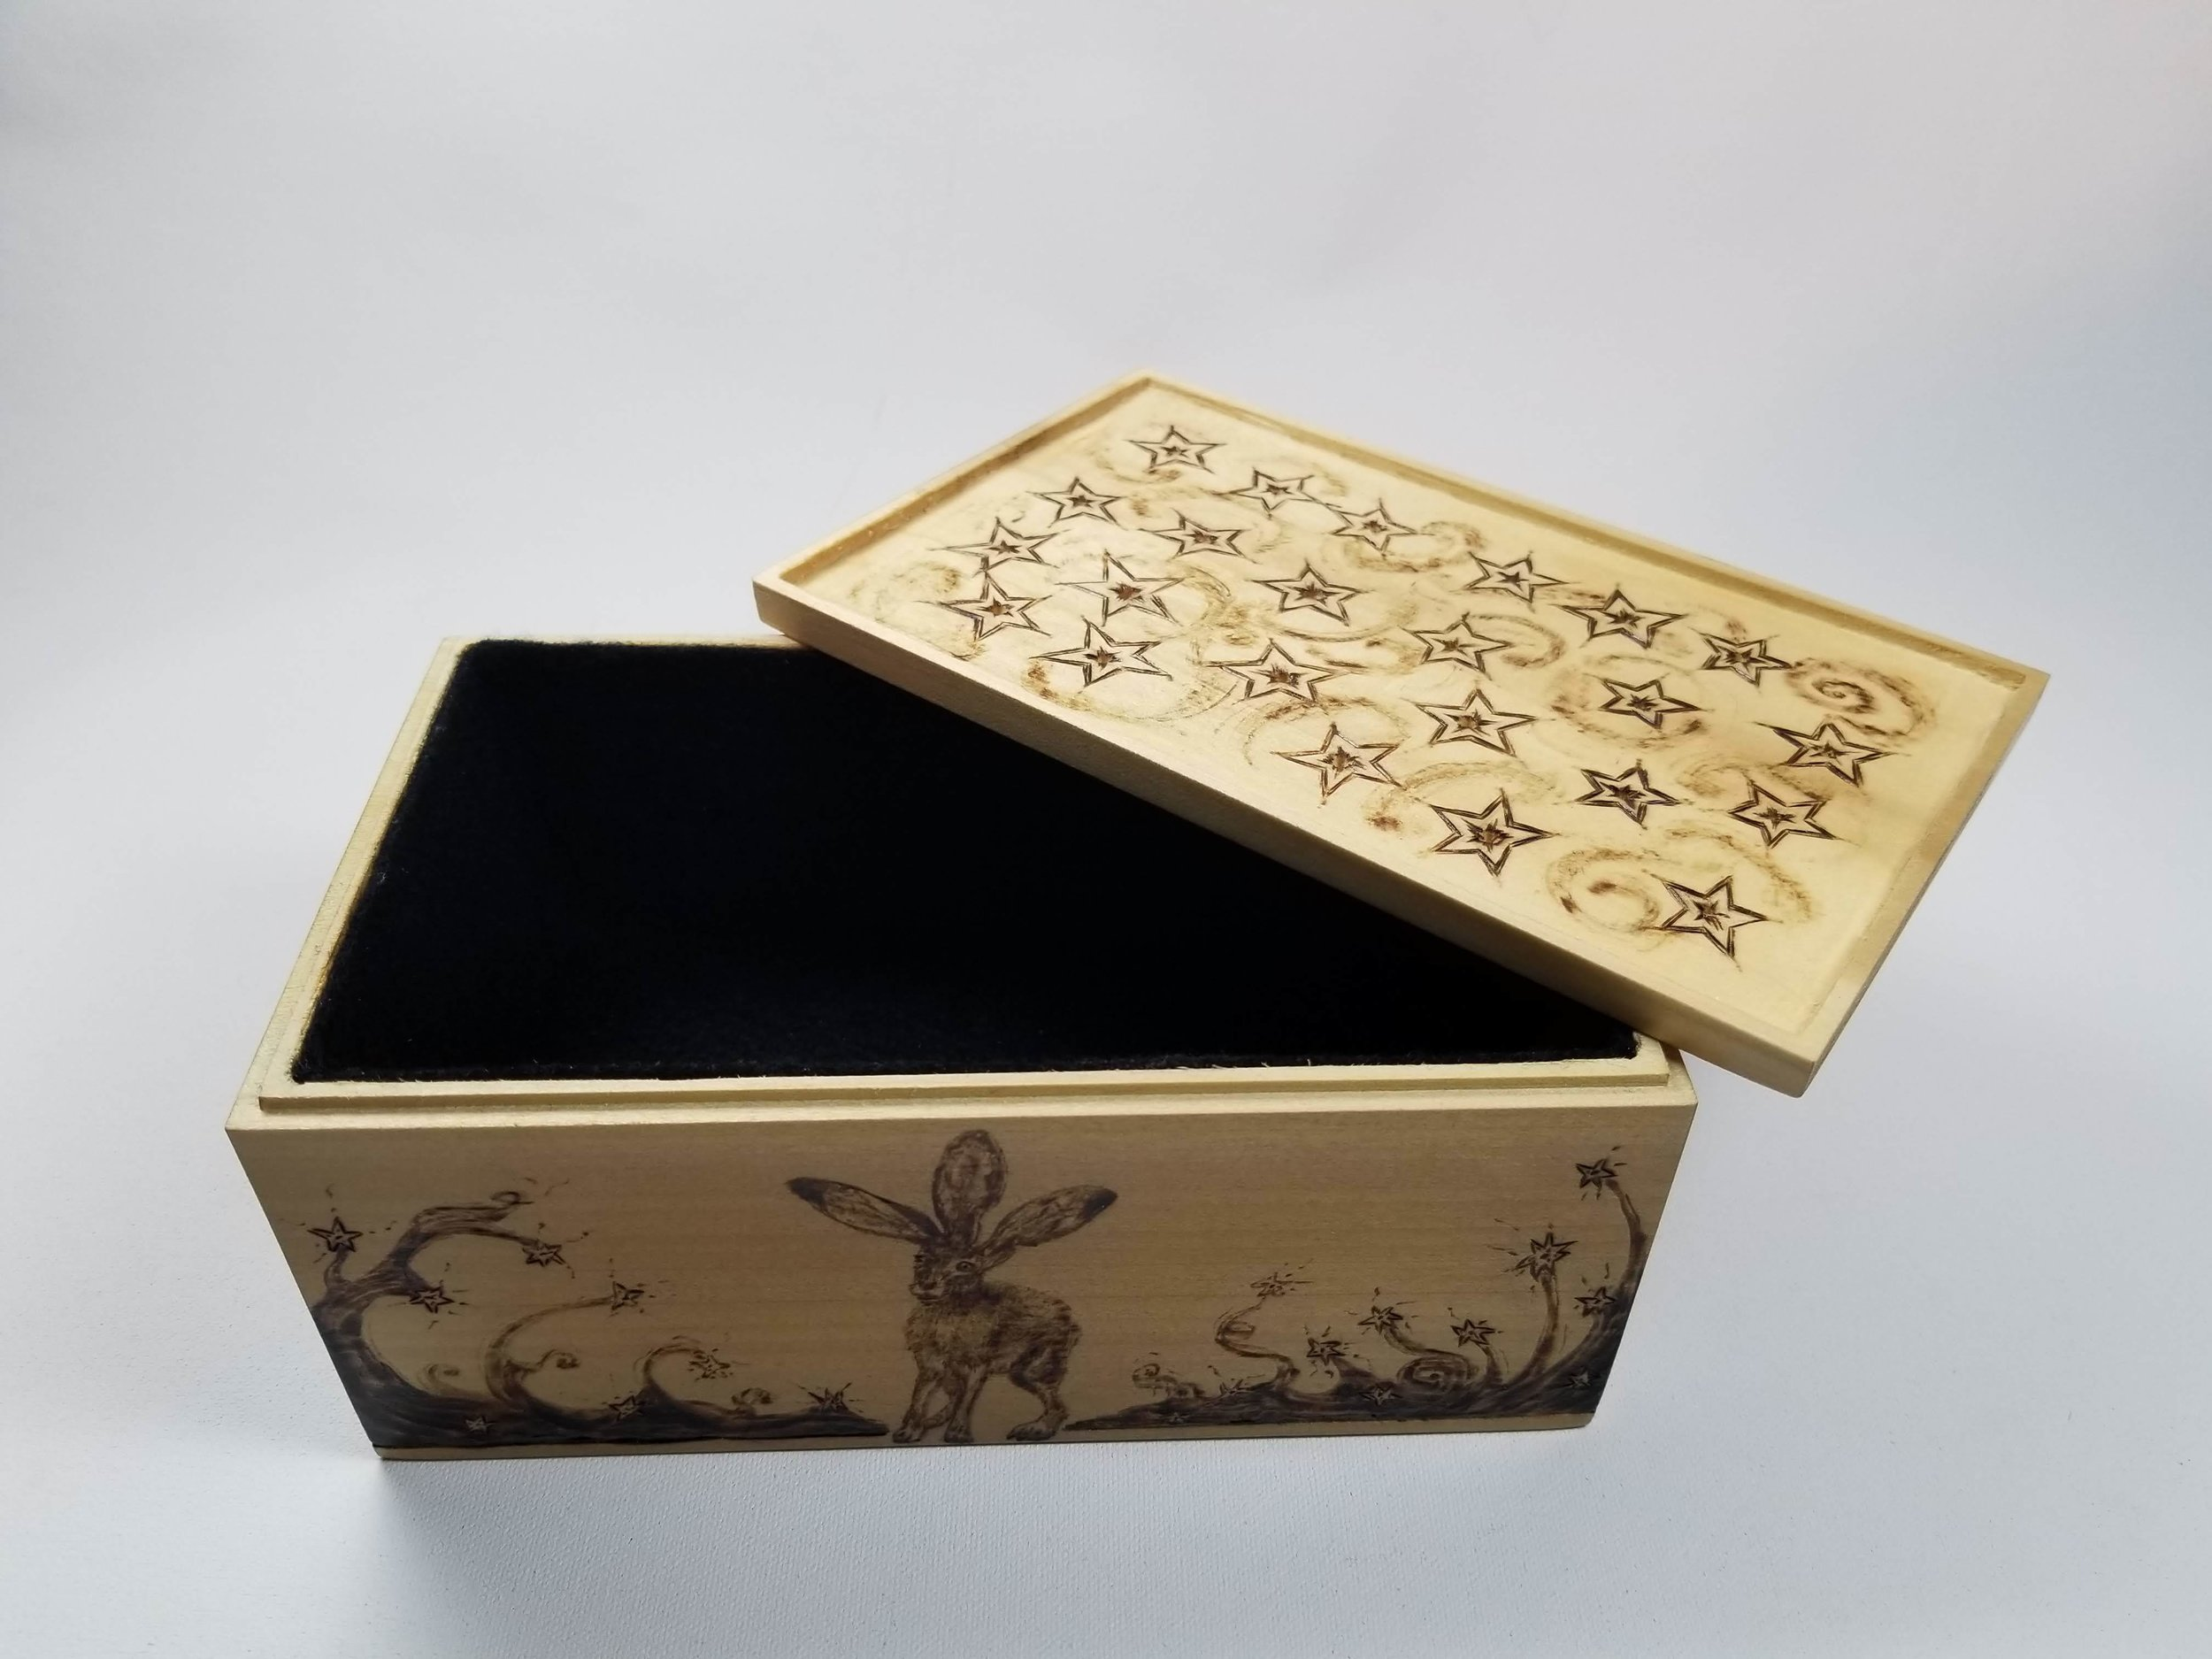 Hand carved Poplar wood box with felt lining showing stars on the underside of the lid.